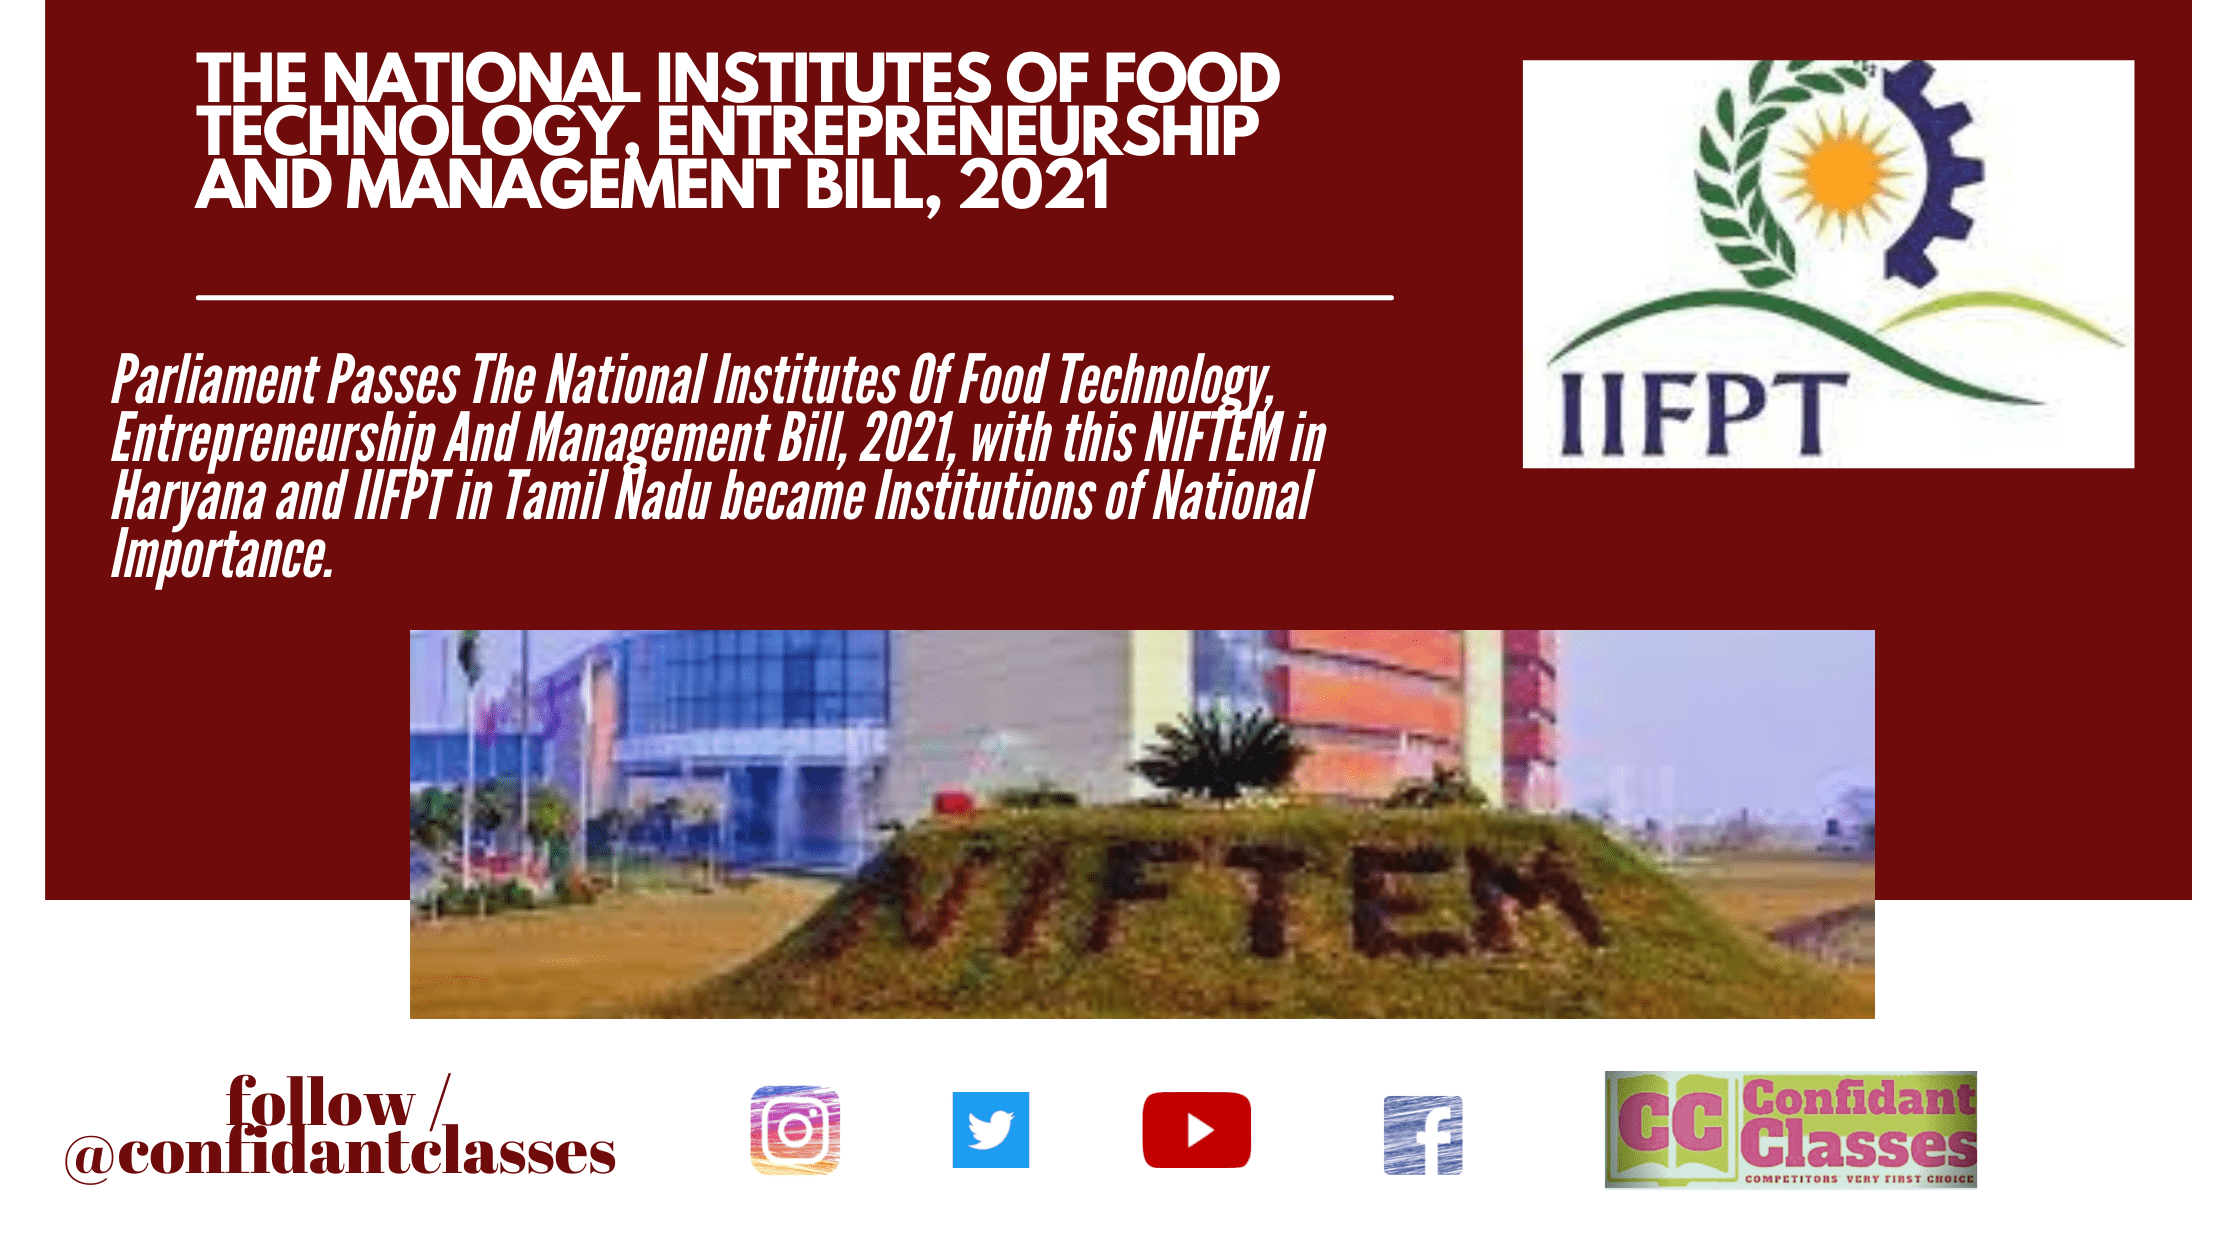 The National Institutes Of Food Technology, Entrepreneurship And Management Bill, 2021